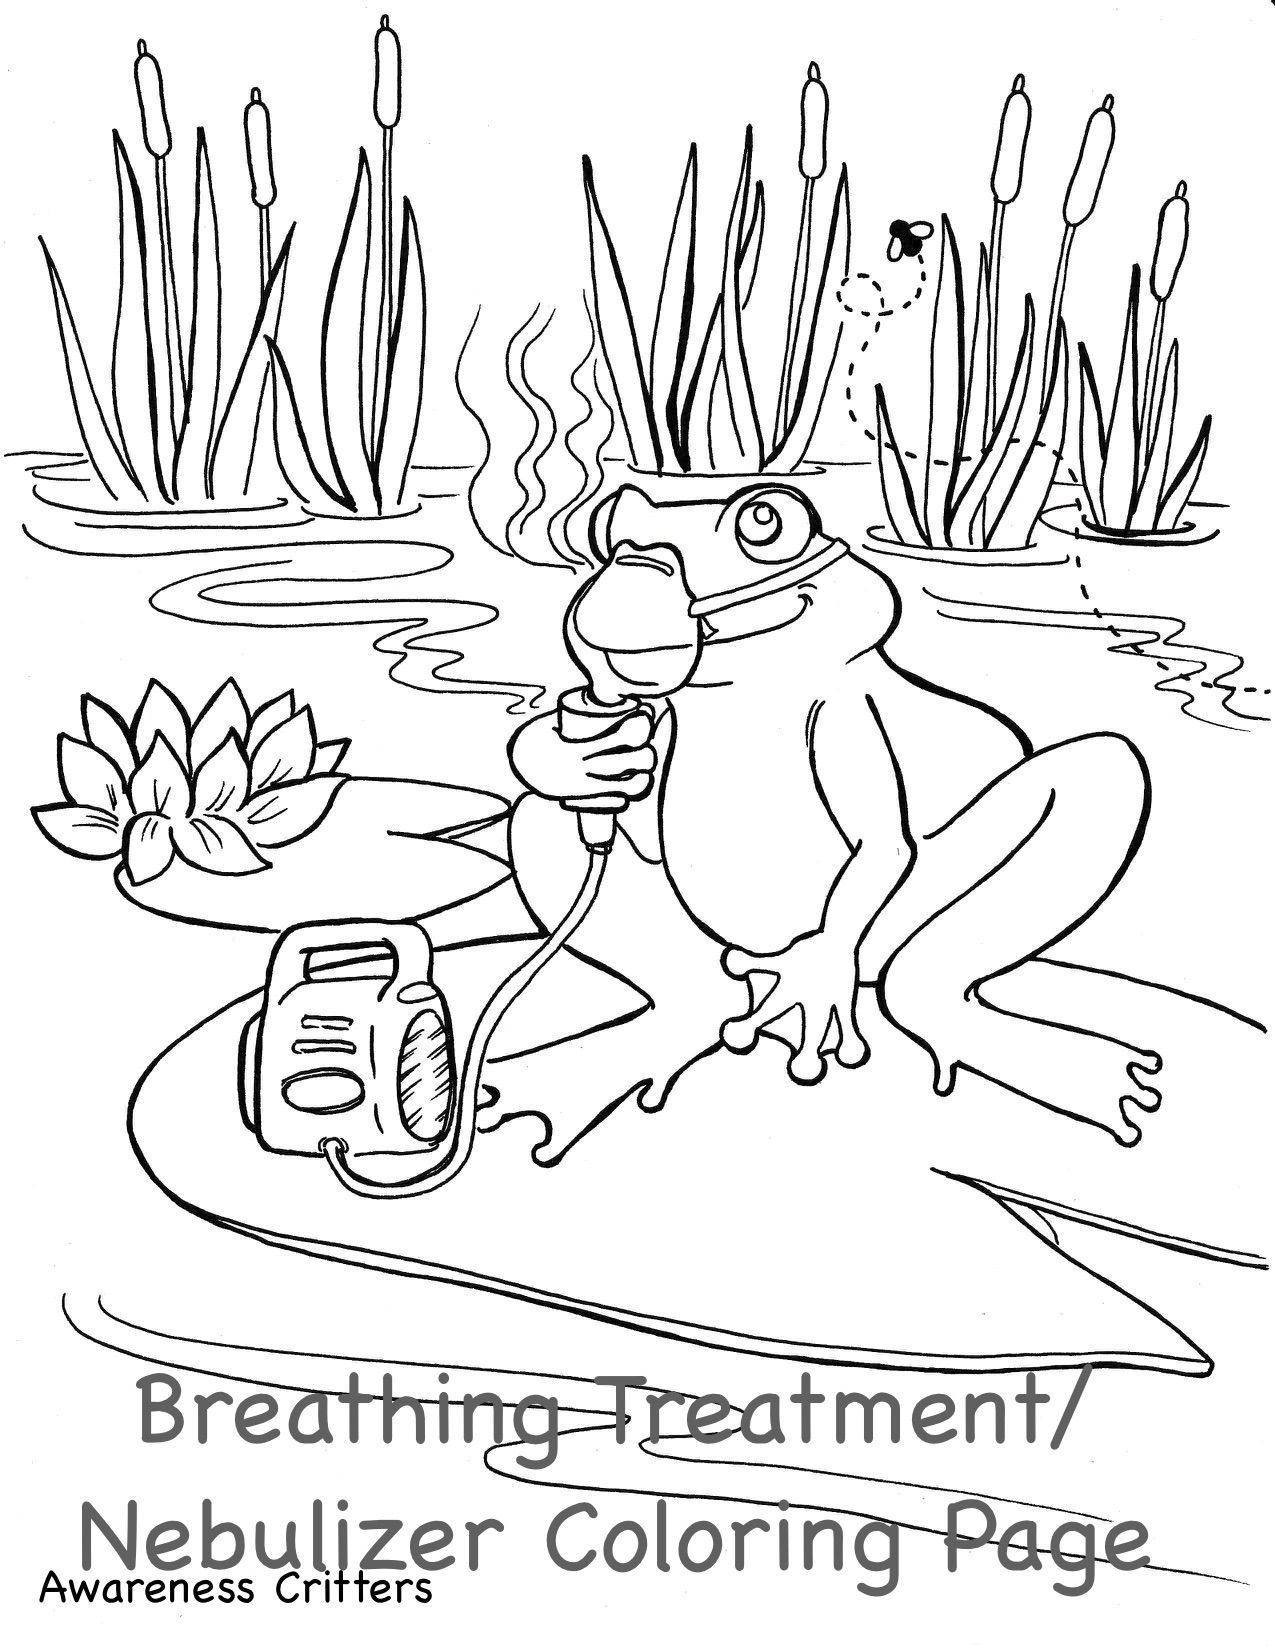 Coloring Pages Awareness Critters Coloring Pages Lungs Health